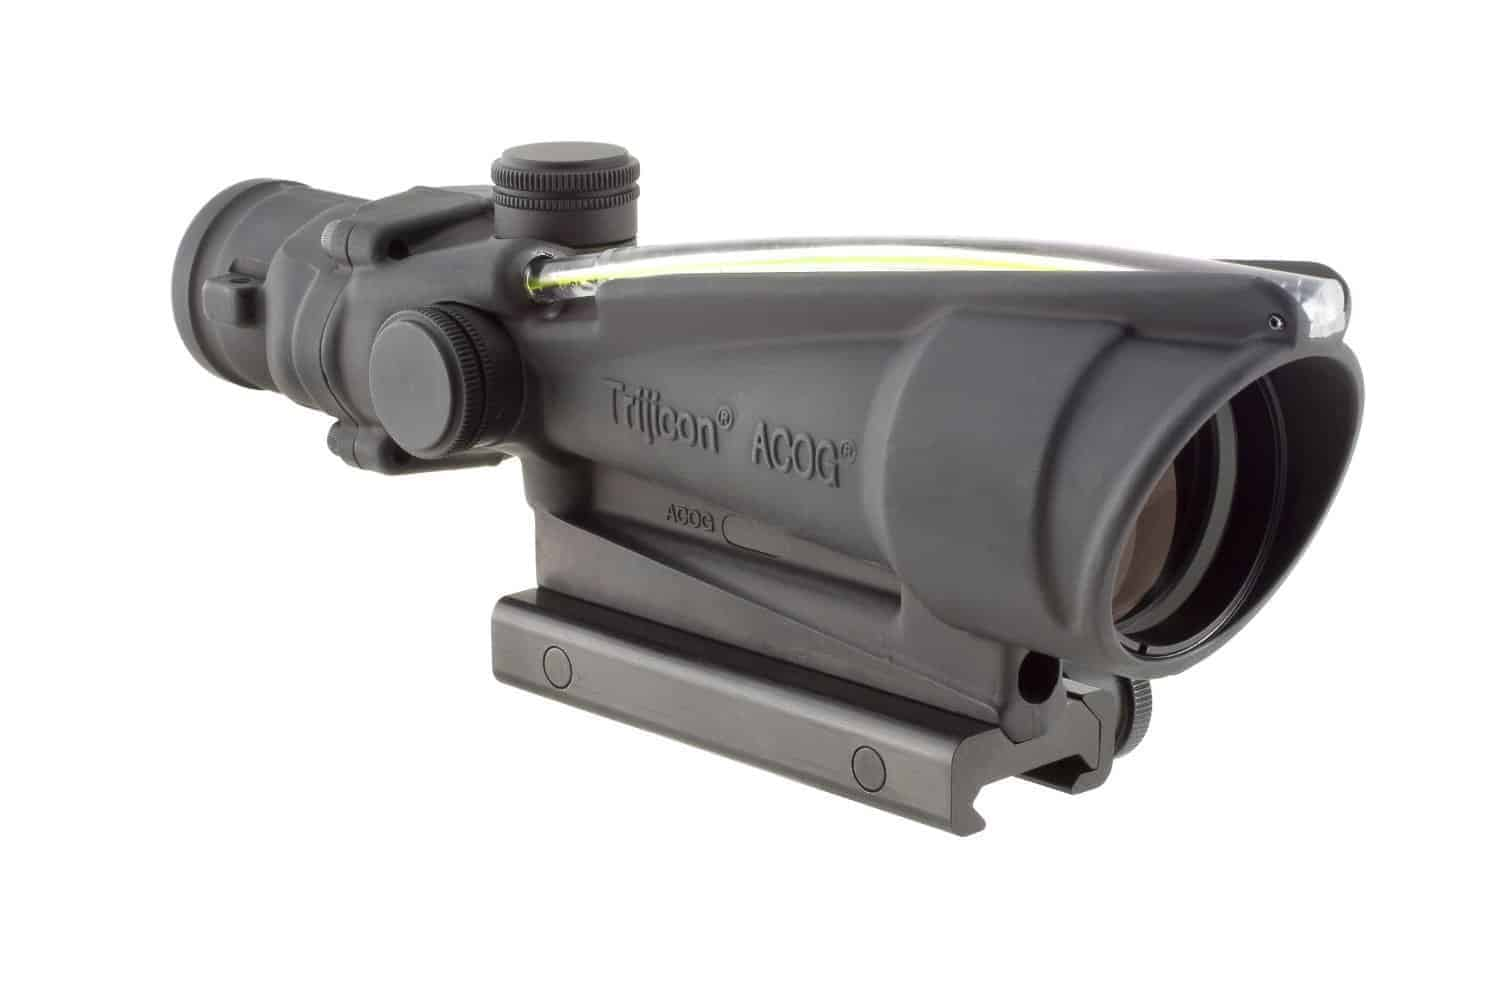 acog-3-5-x-35-scope-dual-illuminated-chevron-308-ballistic-reticle